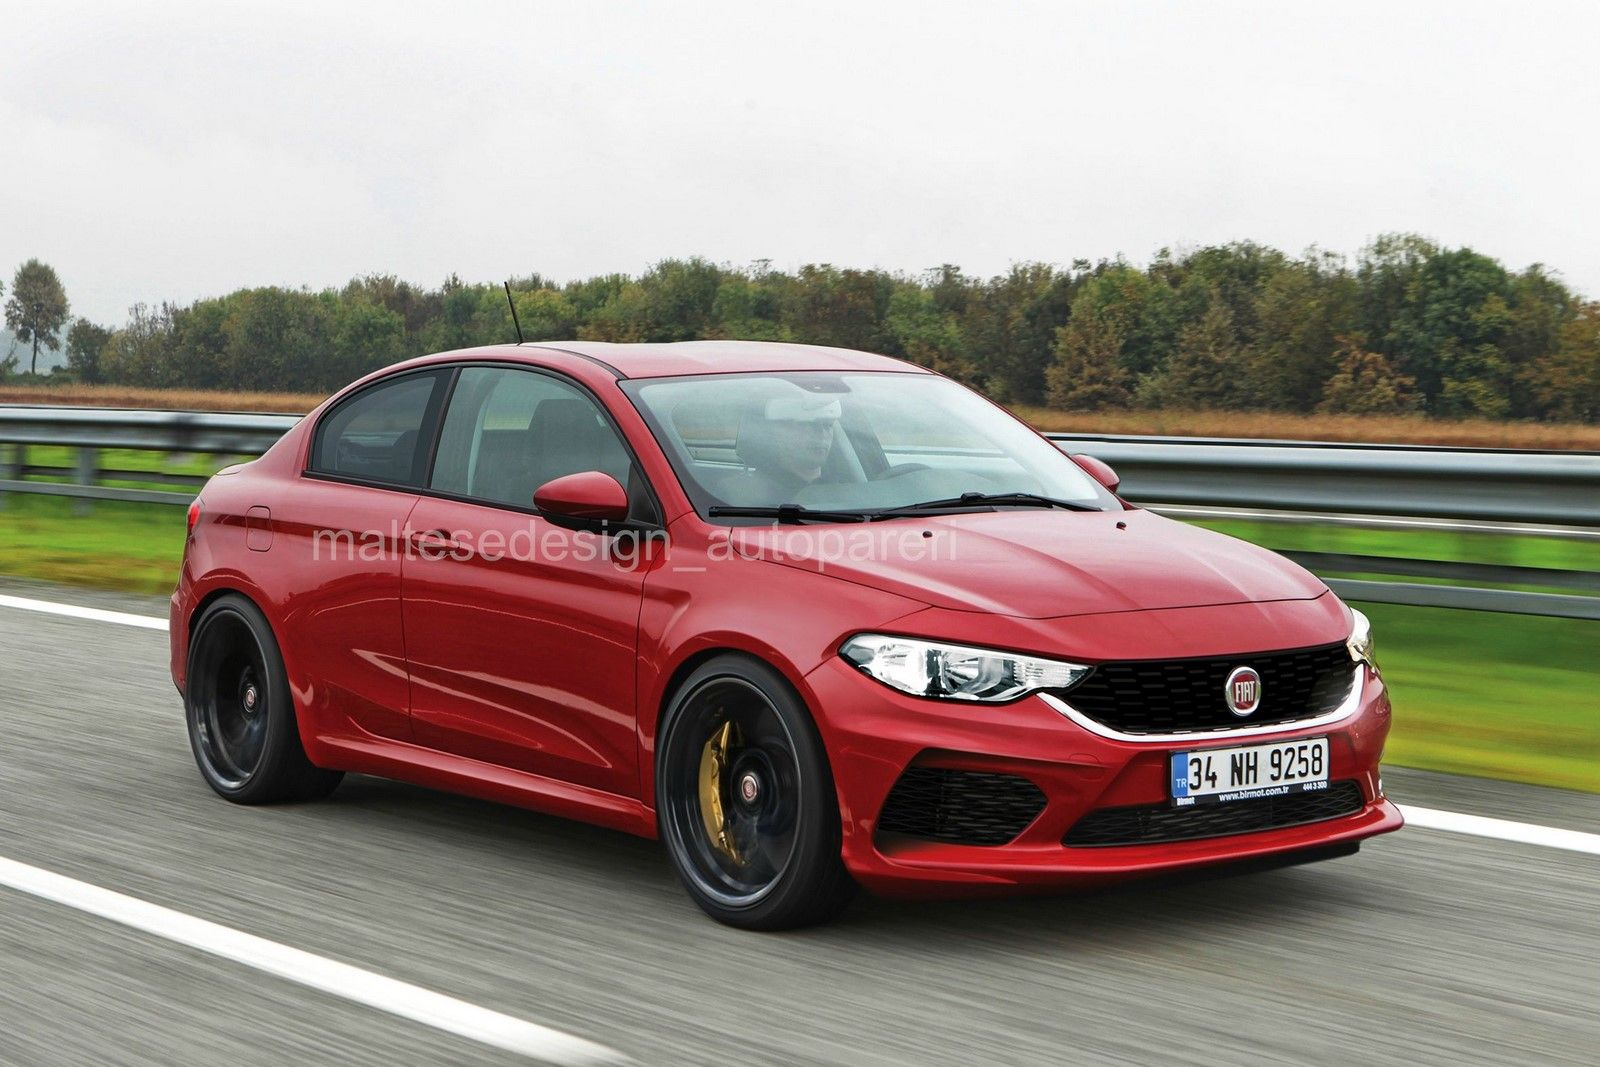 Fiat Abarth Tipo Coupe rendered - Will Fiat make one? | Fiat abarth